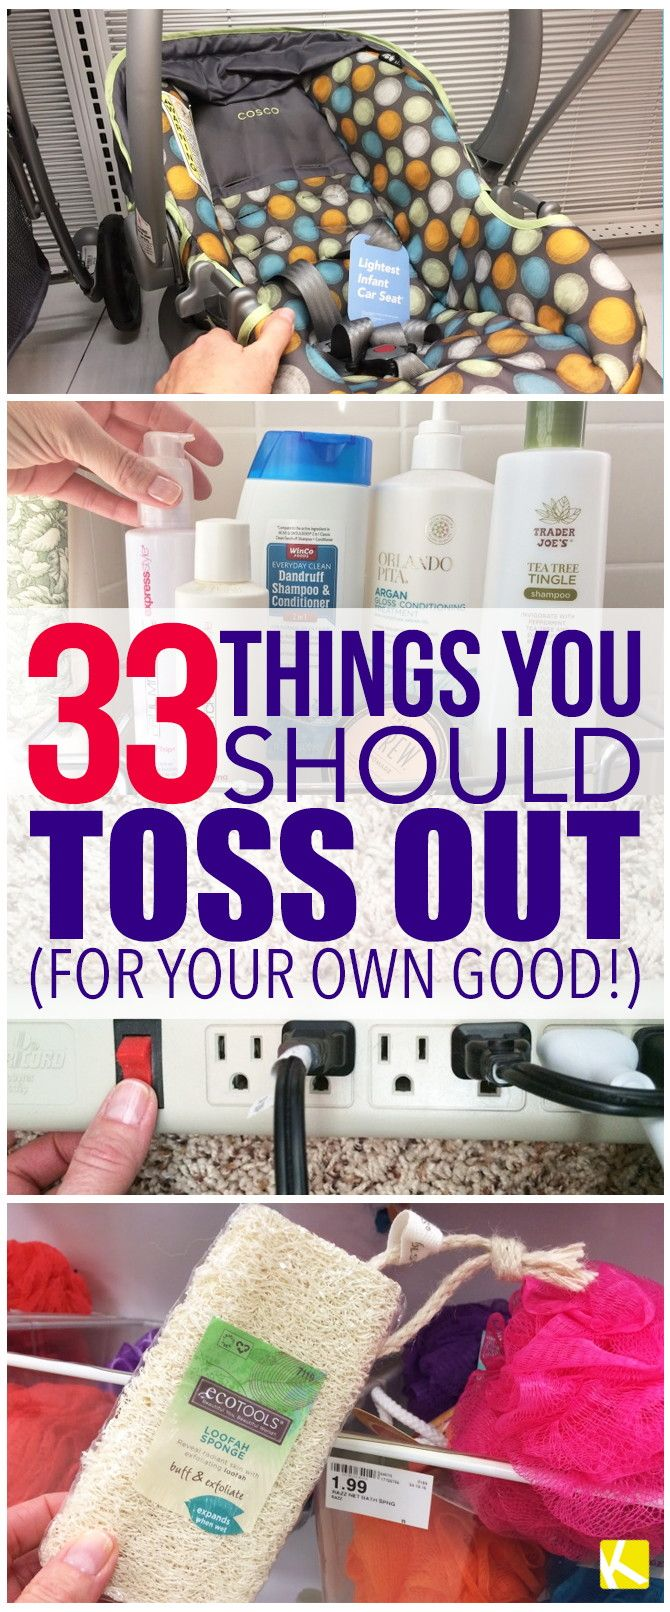 1332 Best Wine And Dine Images On Pinterest Acupressure Cancer Eco Tools Glow For It 33 Things You Should Toss Out Your Own Good